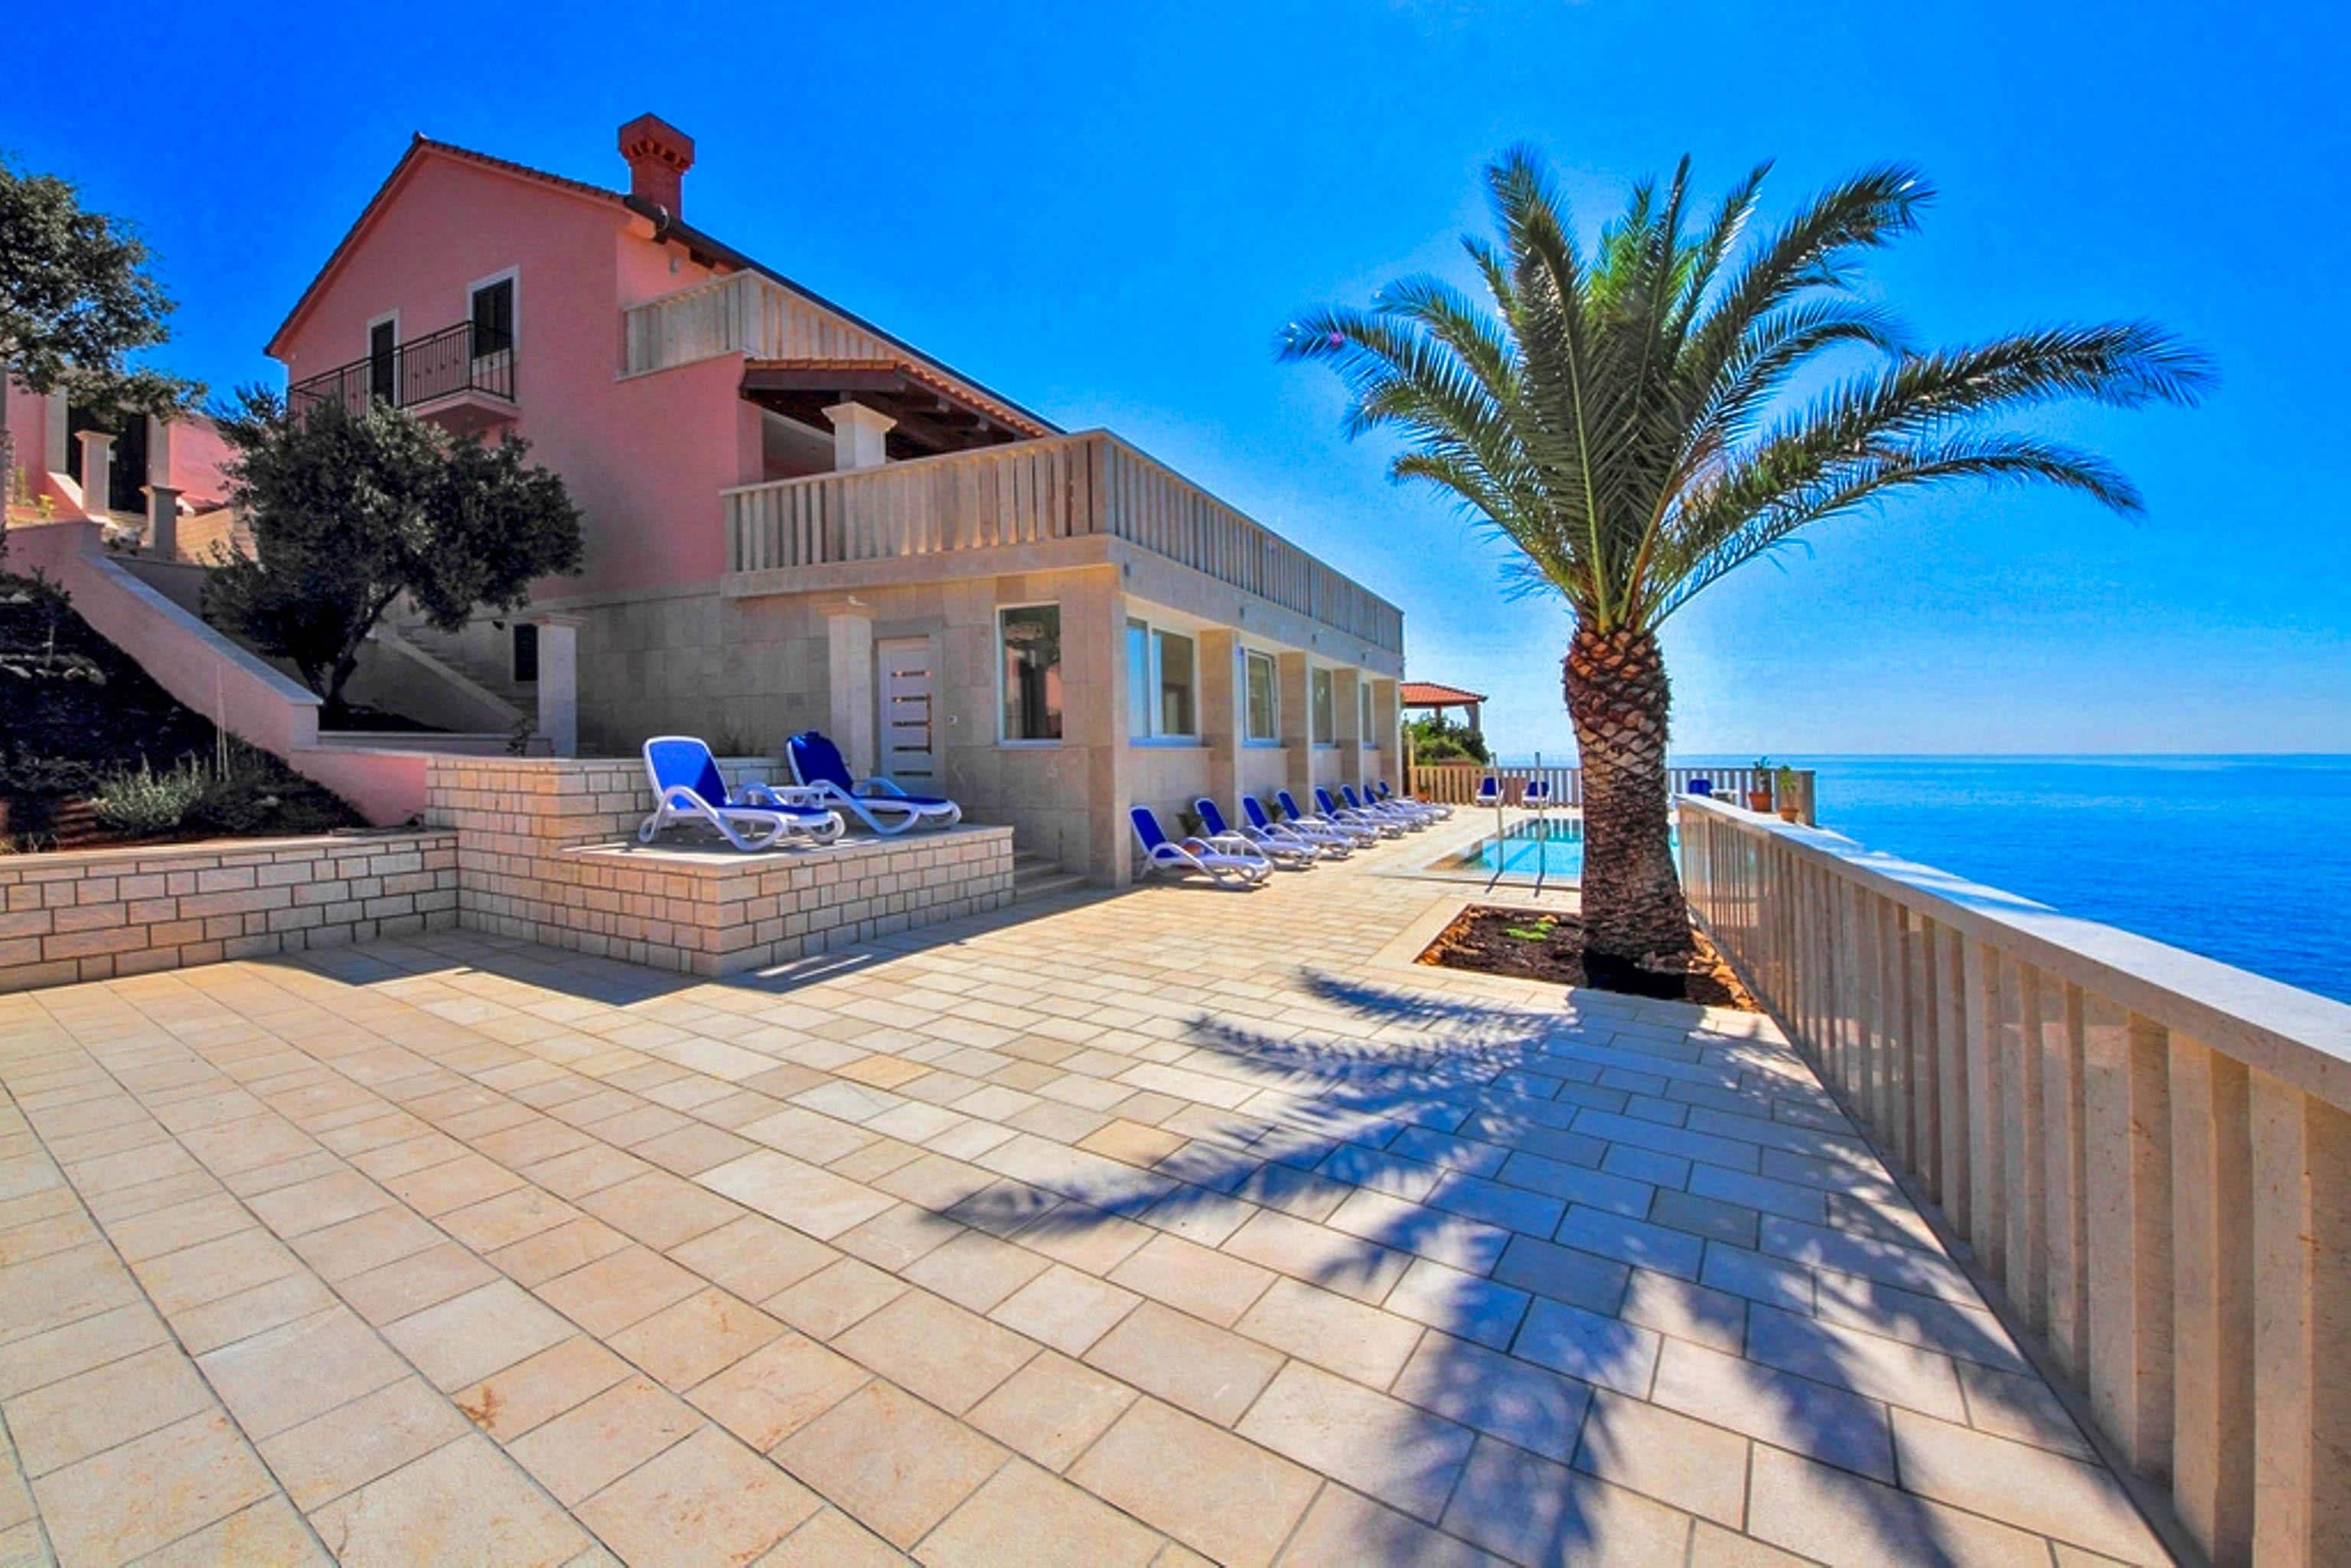 Property Image 2 - Secluded Seafront Villa Located Close to Vineyards